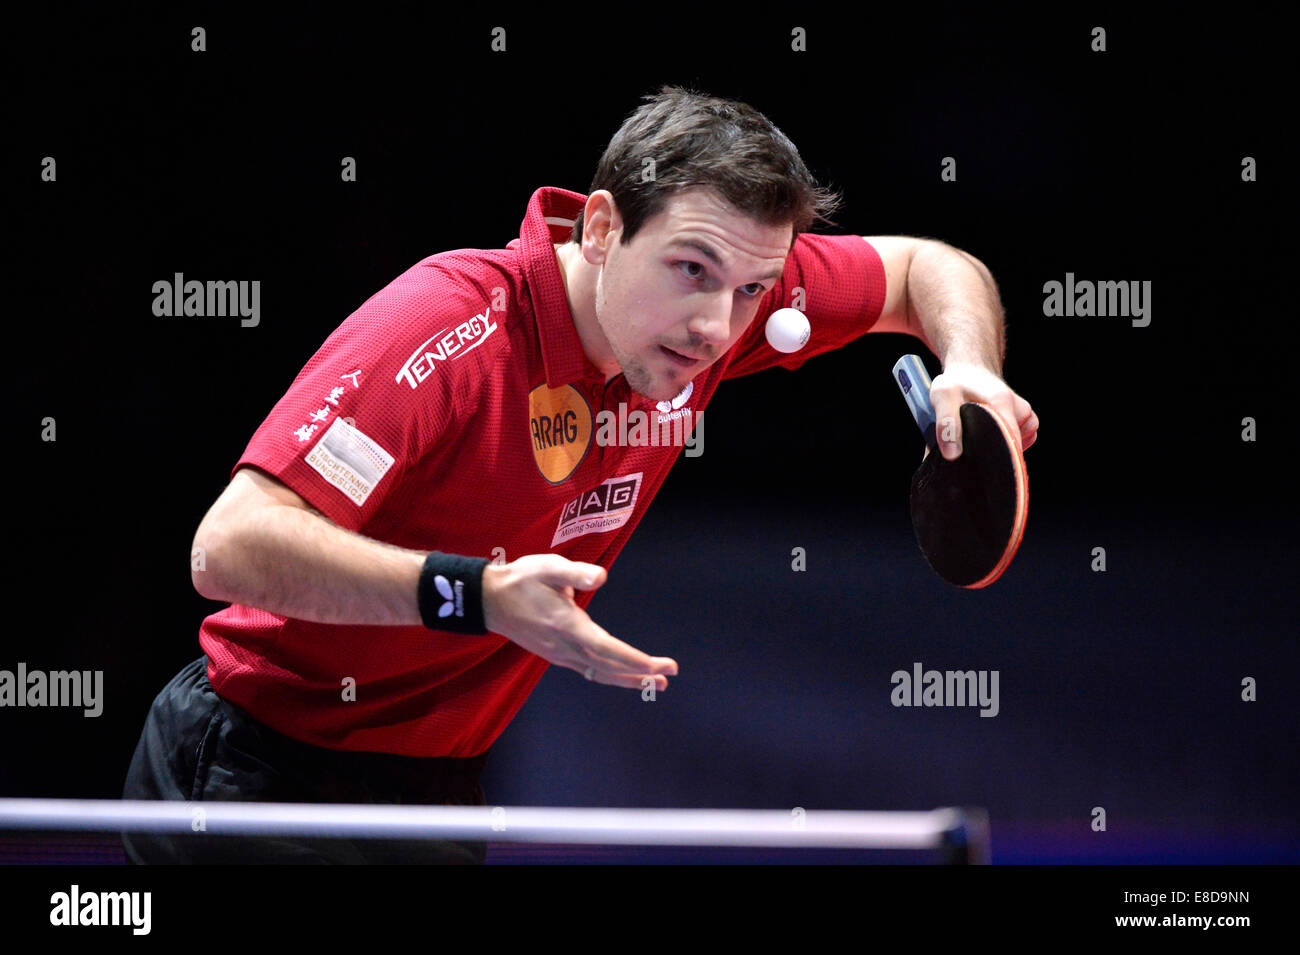 Timo Boll, GER, Table Tennis Cup finale, Porsche Arena di Stoccarda, Baden-Württemberg, Germania Immagini Stock